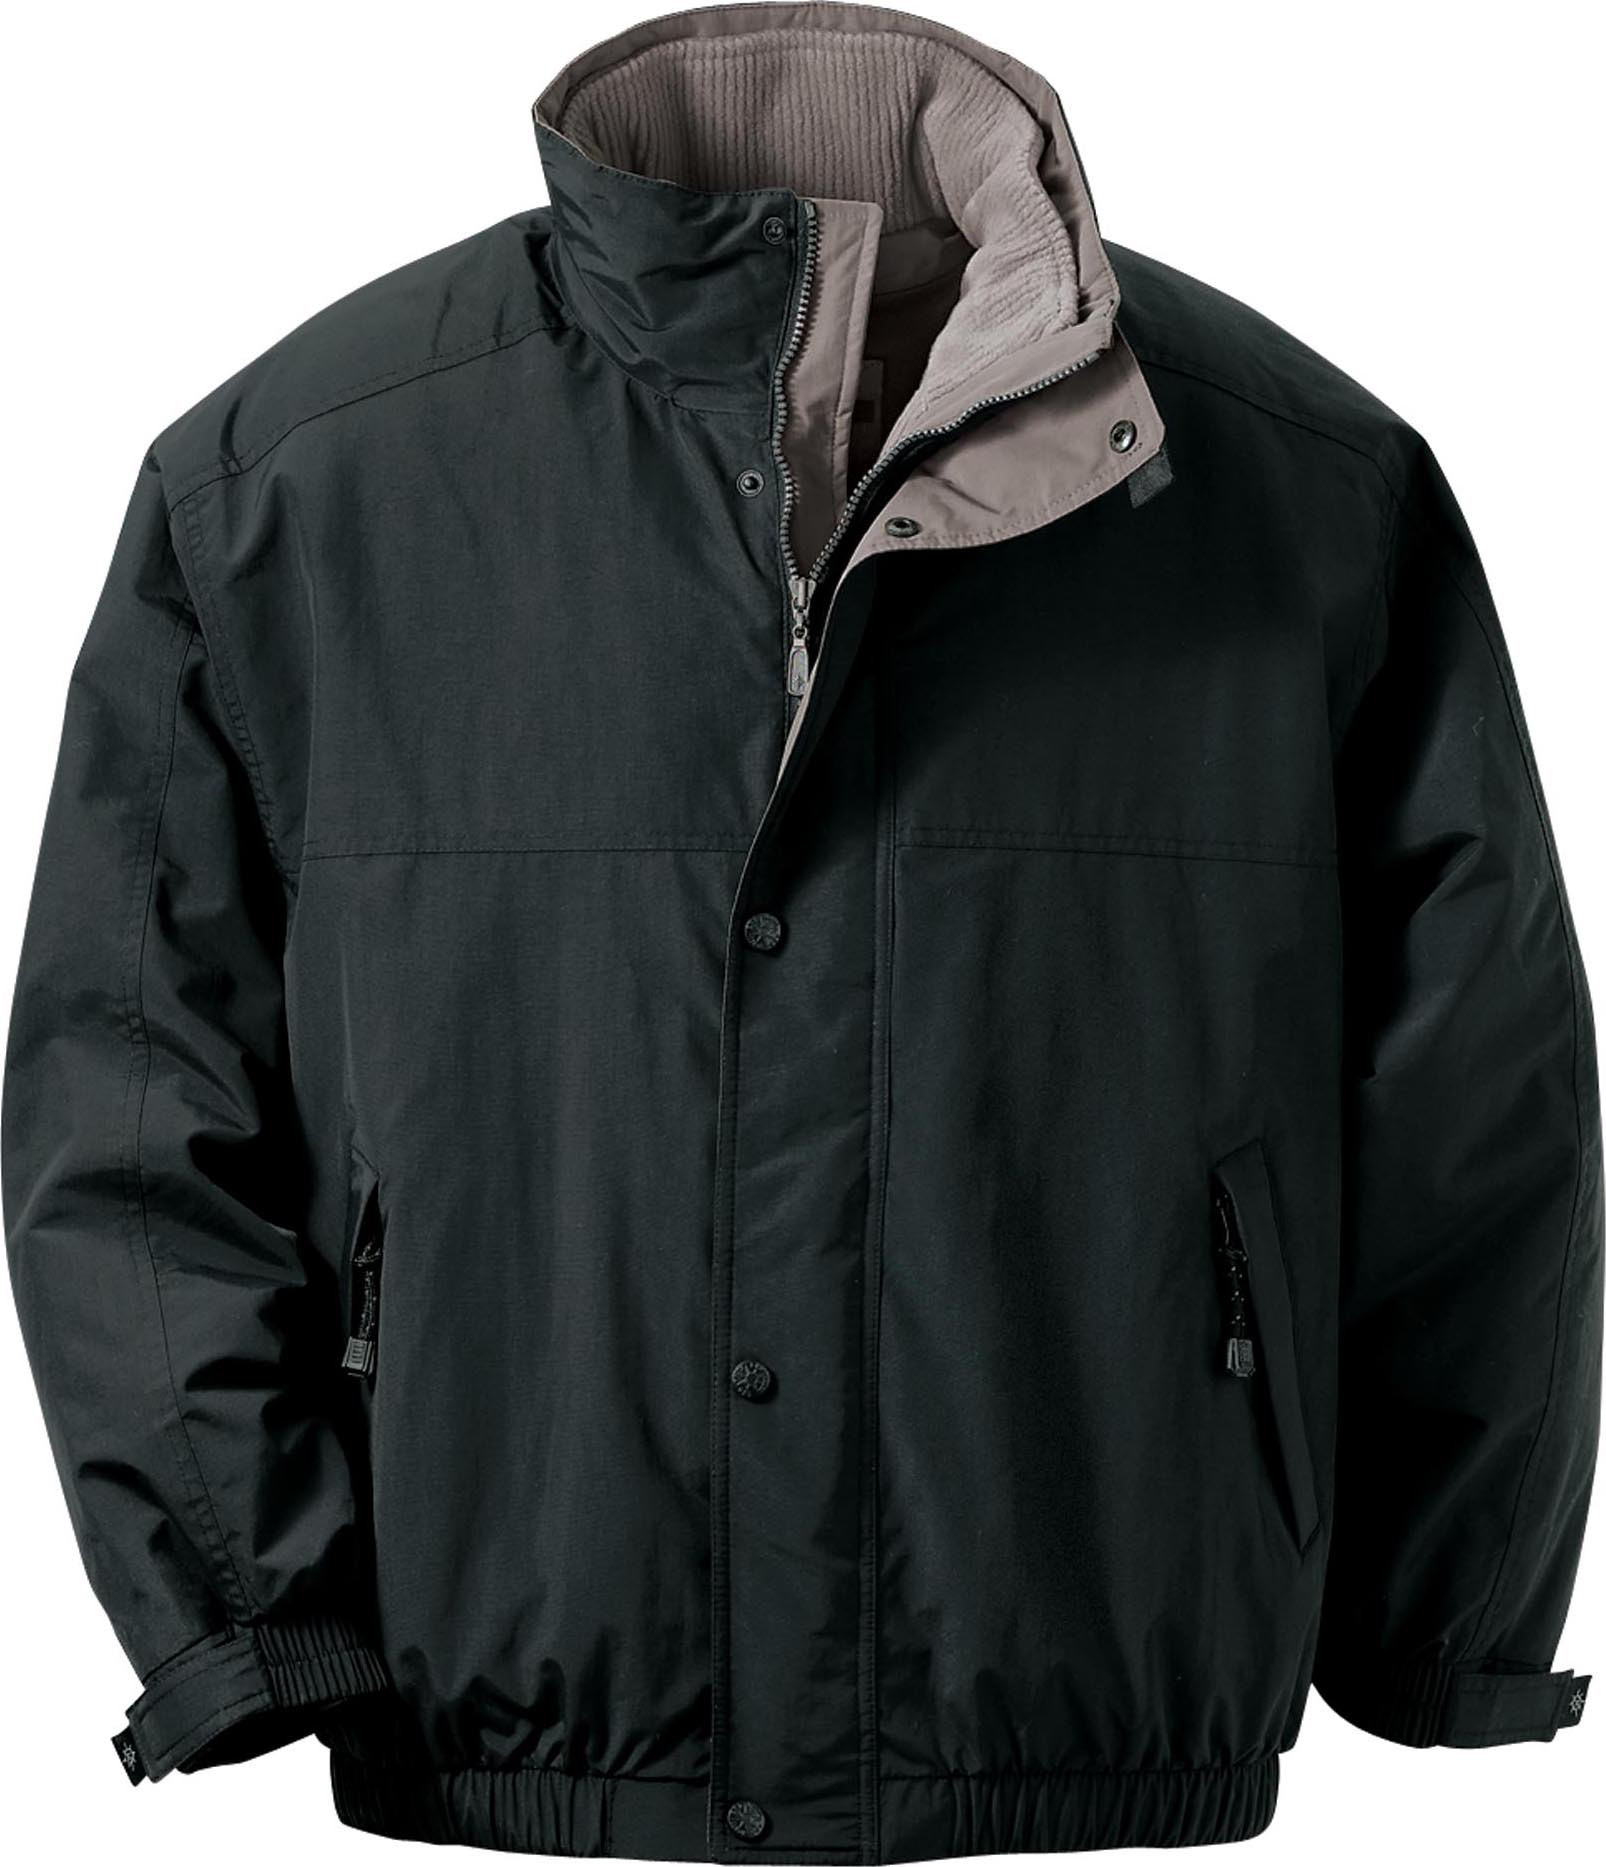 Ash City UTK 3 Warm.Logik 88009 - Men's 3-In-1 Bomber ...